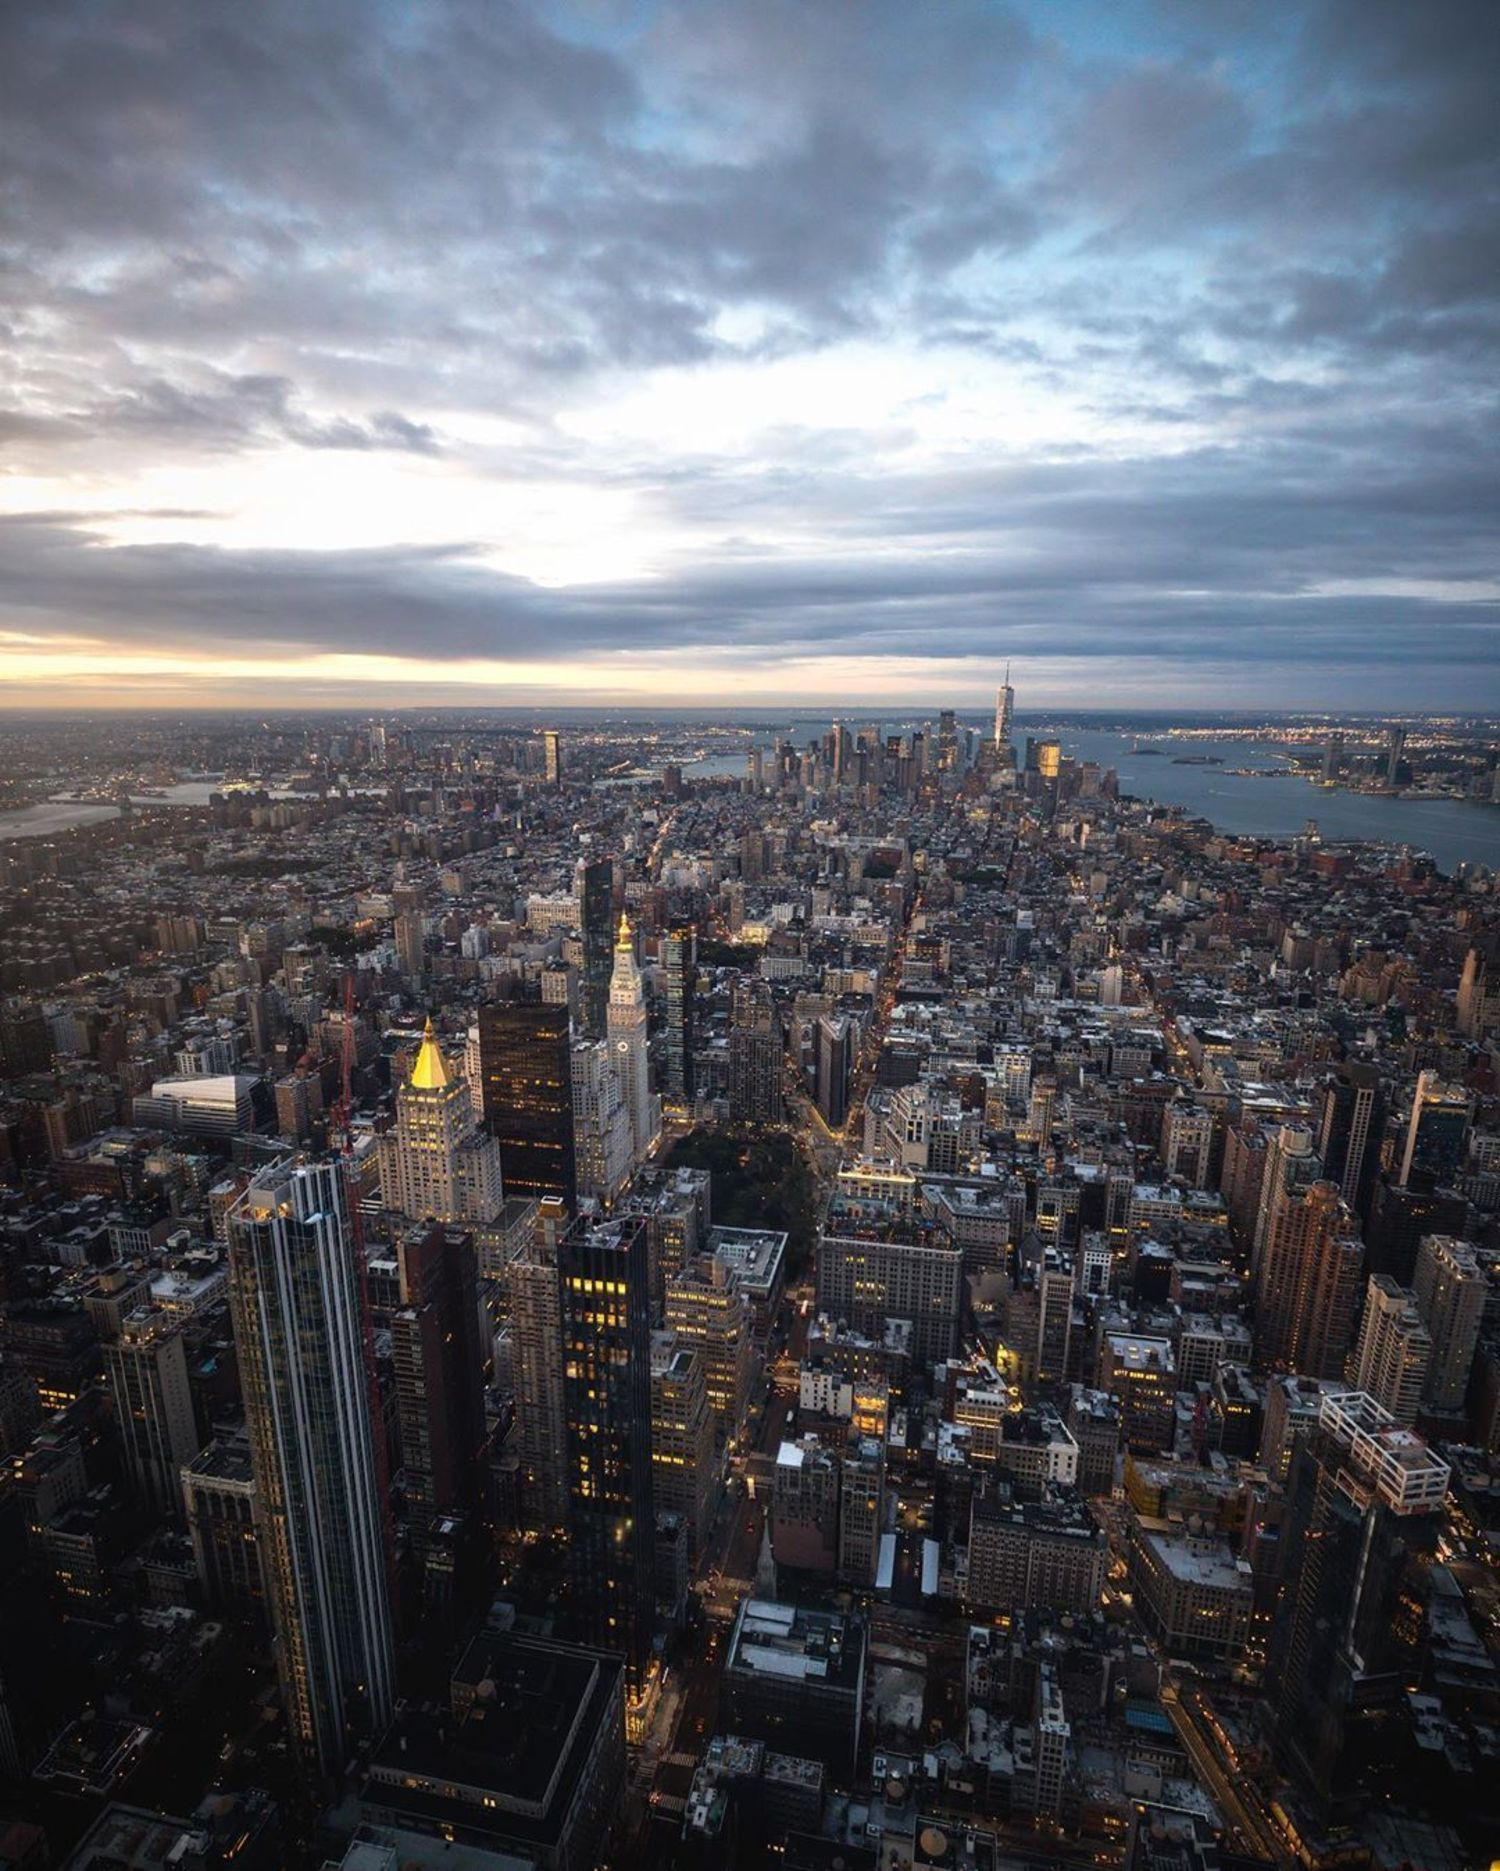 Lower Manhattan from Empire State Building 102nd Floor Observation Deck